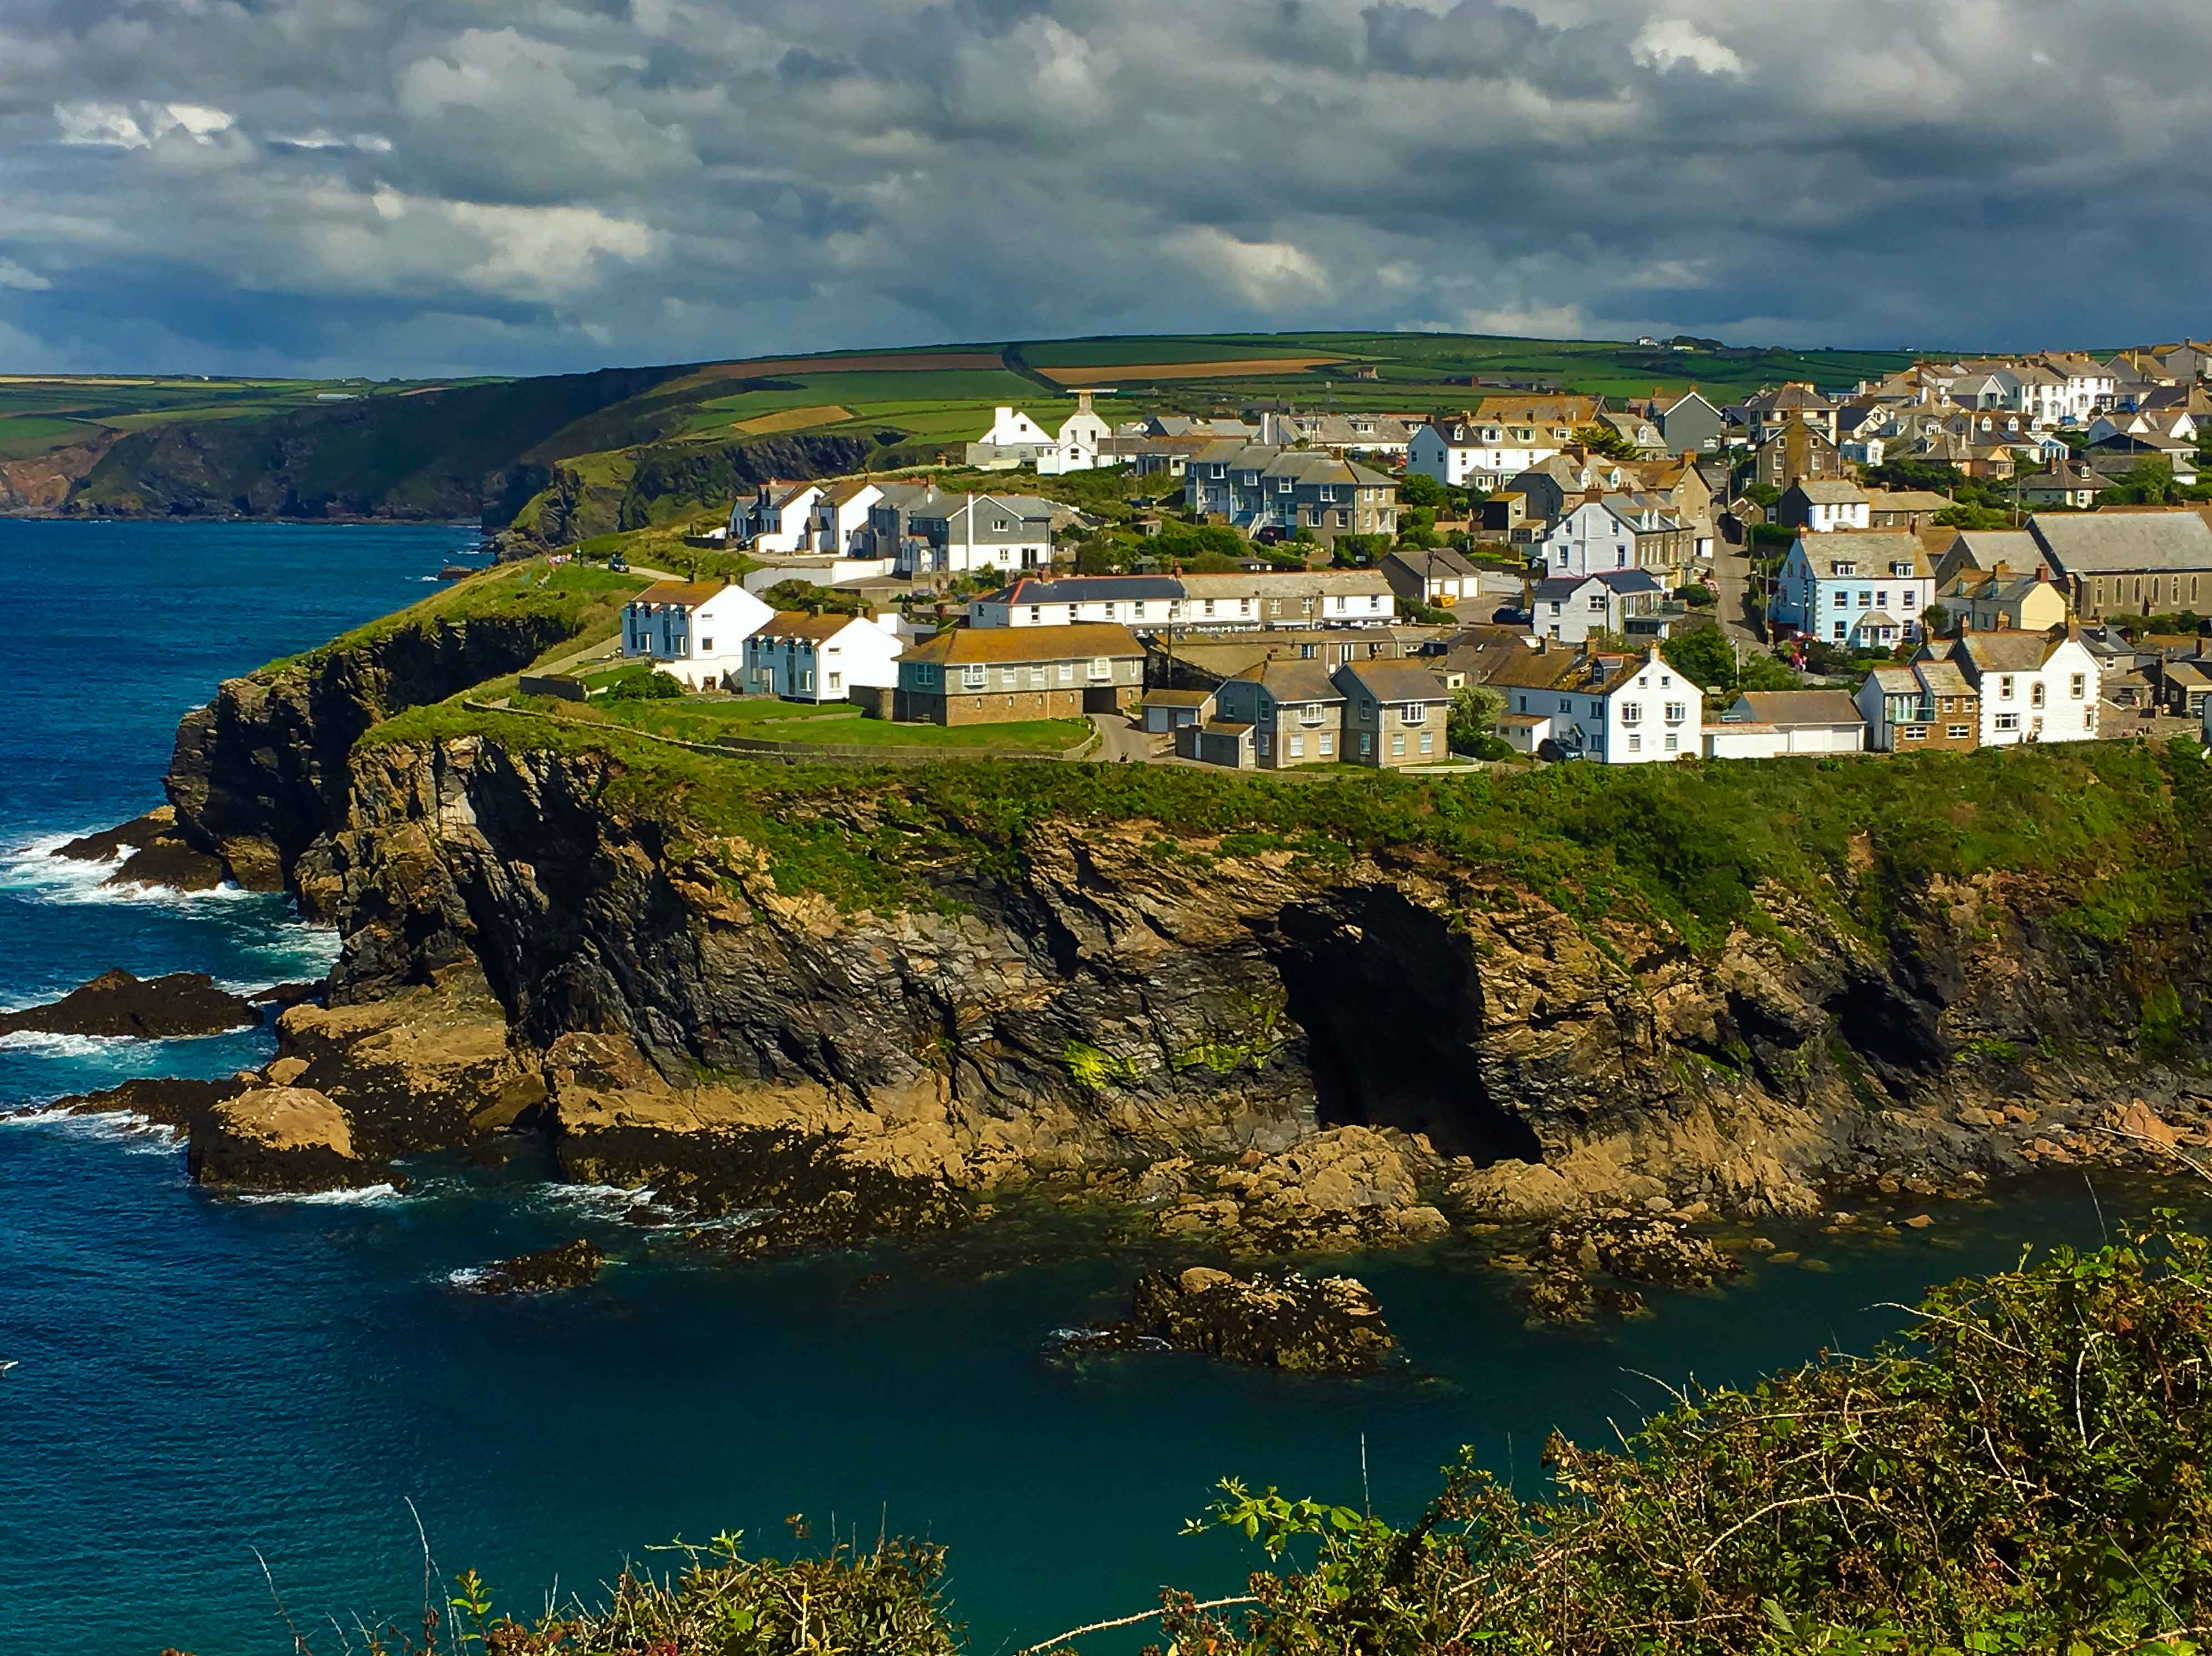 Canva---Picturesque-view-of-Port-Isaac,-fishing-village-situated-on-the-North-Cornwall-Coast